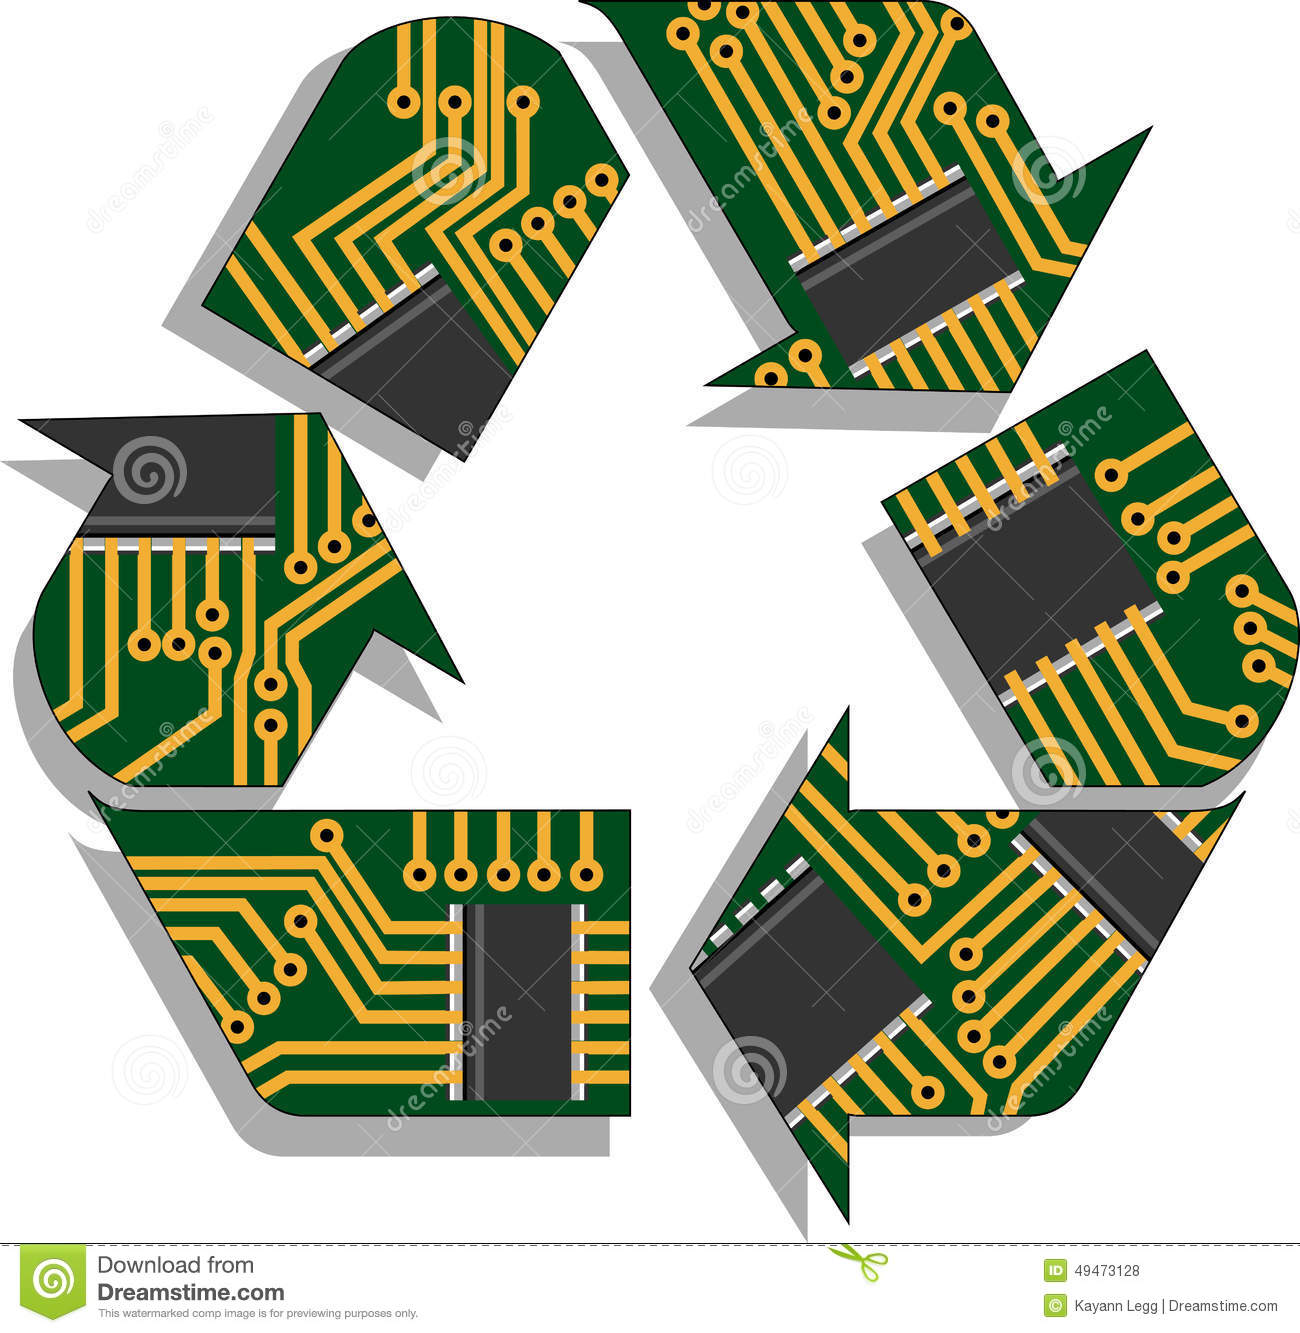 Snap Circuit Board Stock Vector Illustration Of Electronic Clipart Computer K3811151 Search Clip Art Recycle Electronics Equipment 49473128